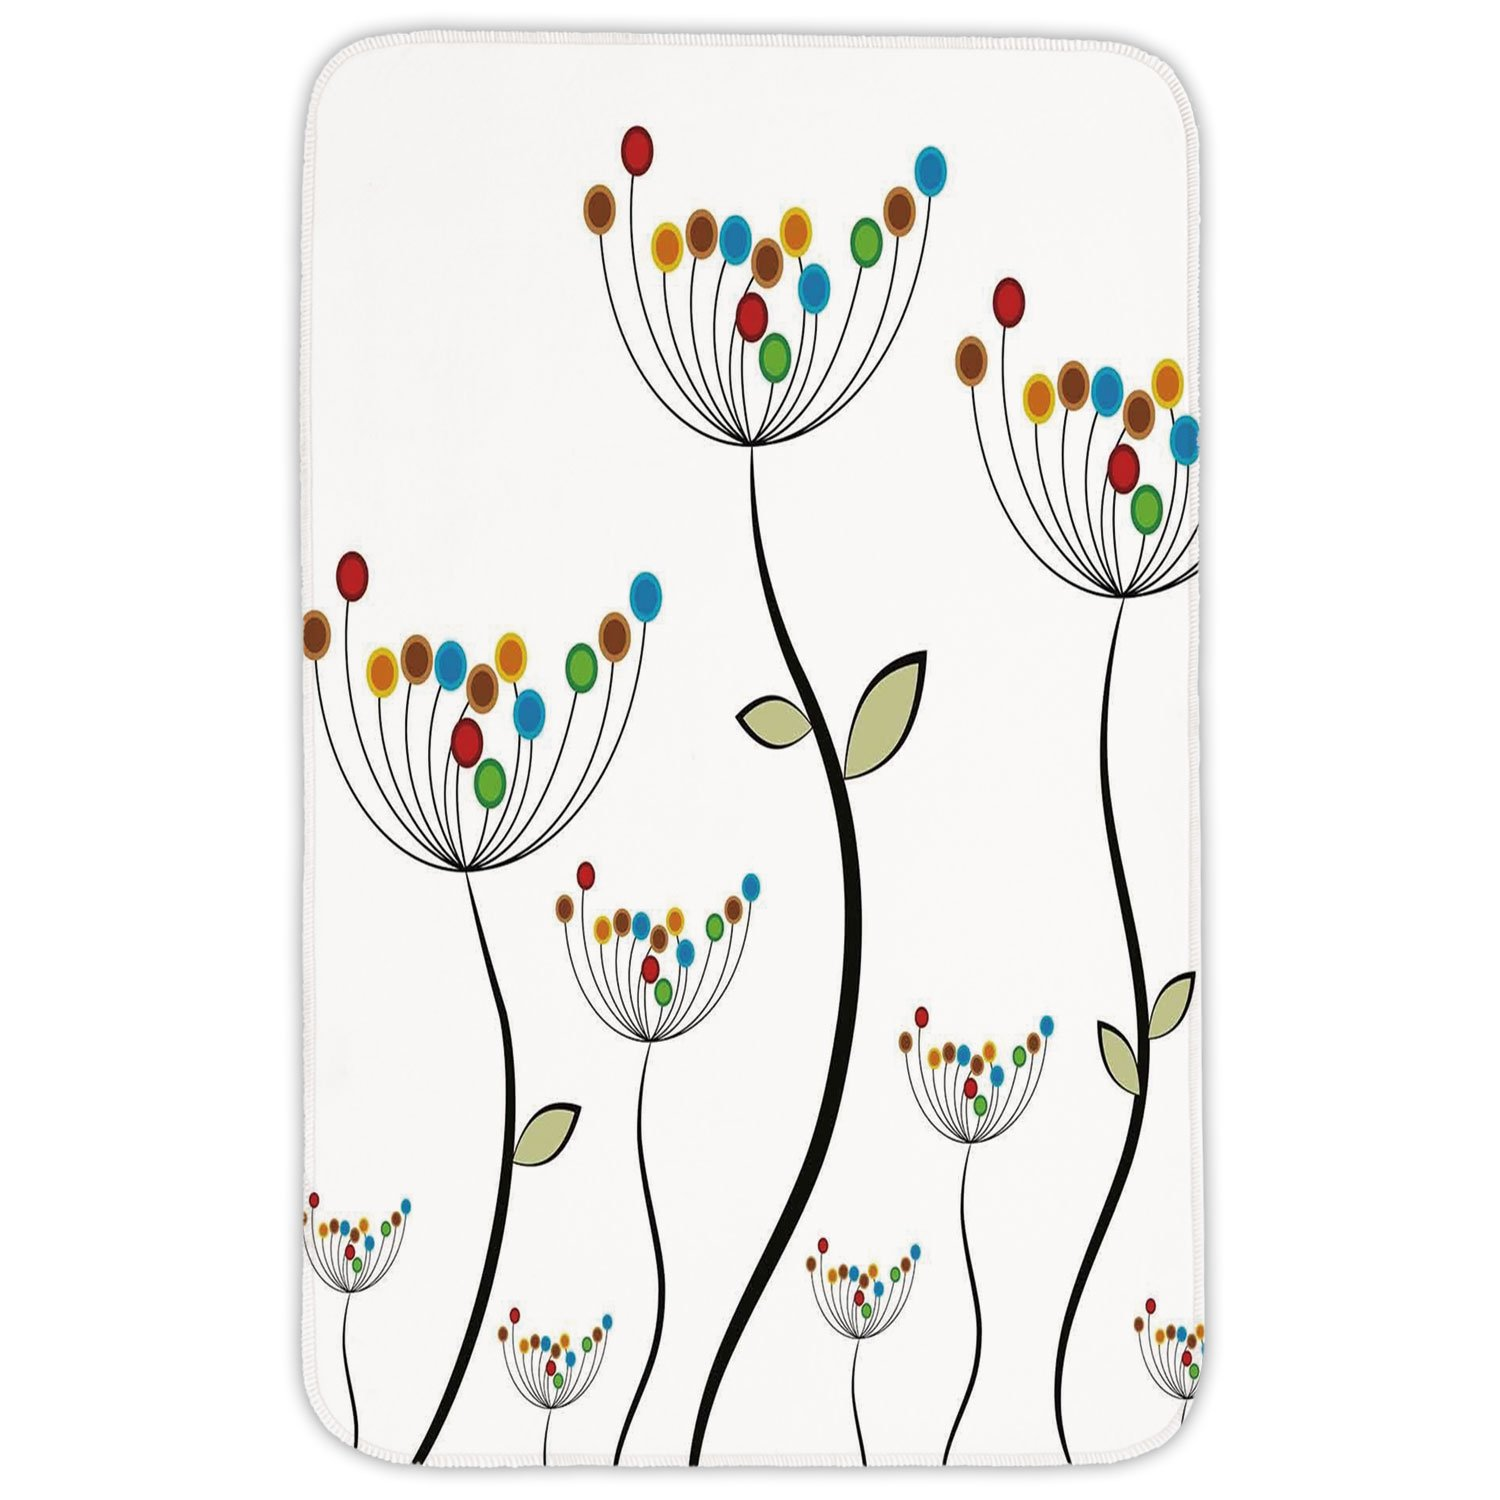 Rectangular Area Rug Mat Rug,Garden,Colorful Dandelions Stems Buds Leaves Bedding Plants Wildlife Meadow Cottage Theme,Multicolor,Home Decor Mat with Non Slip Backing by iPrint (Image #1)